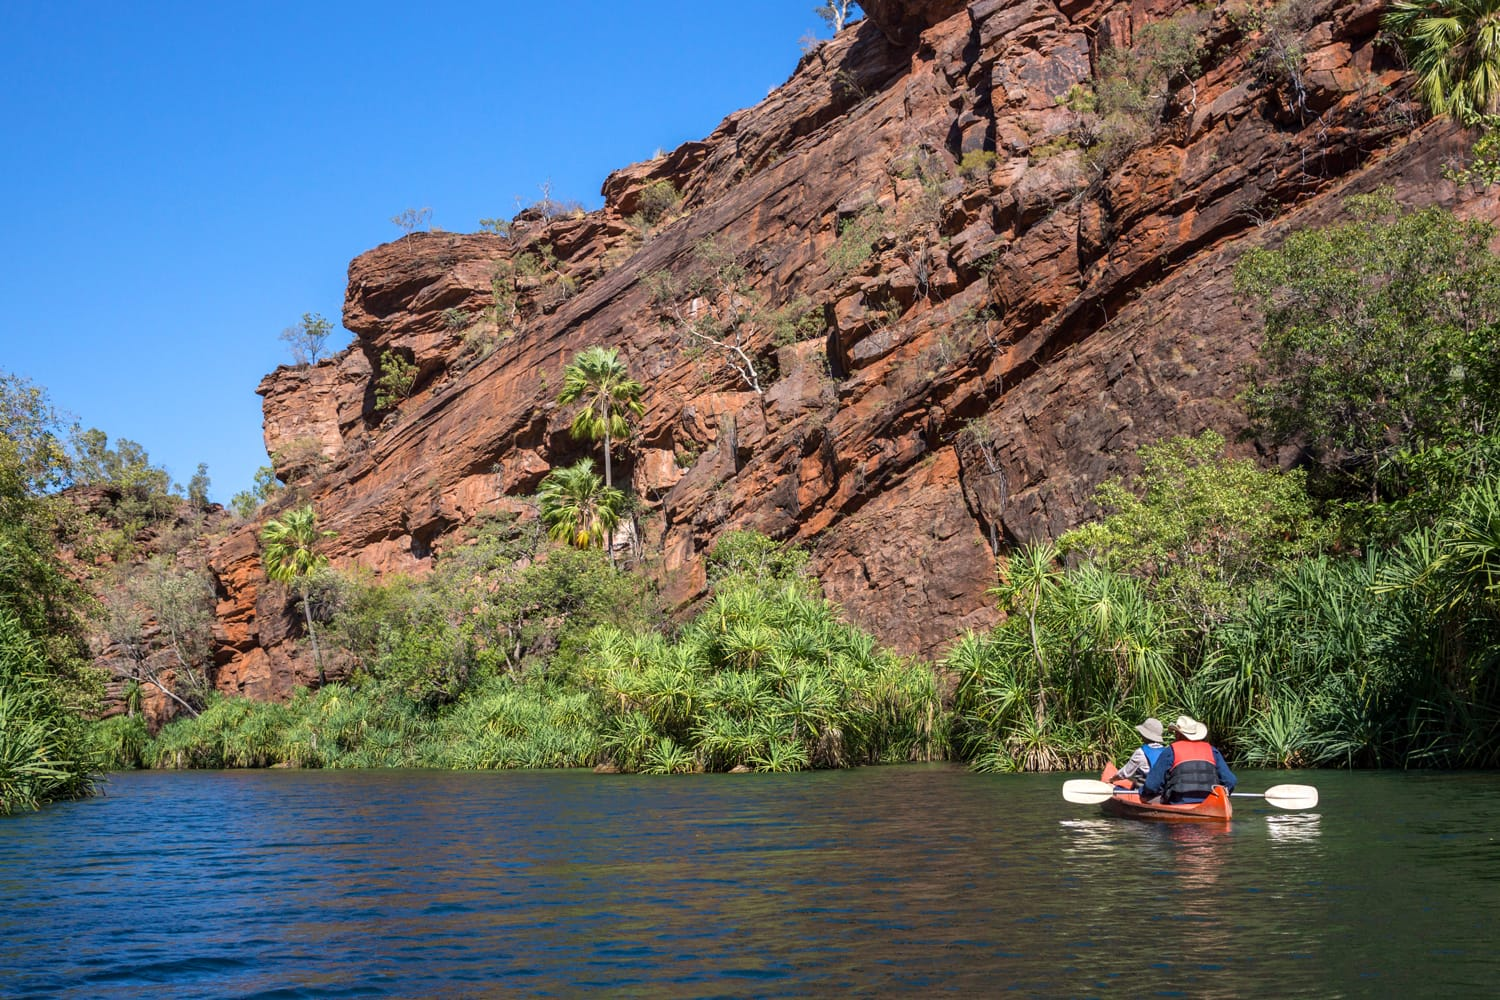 Couple in canoe at Lawn Hill Gorge, Queensland, Australia